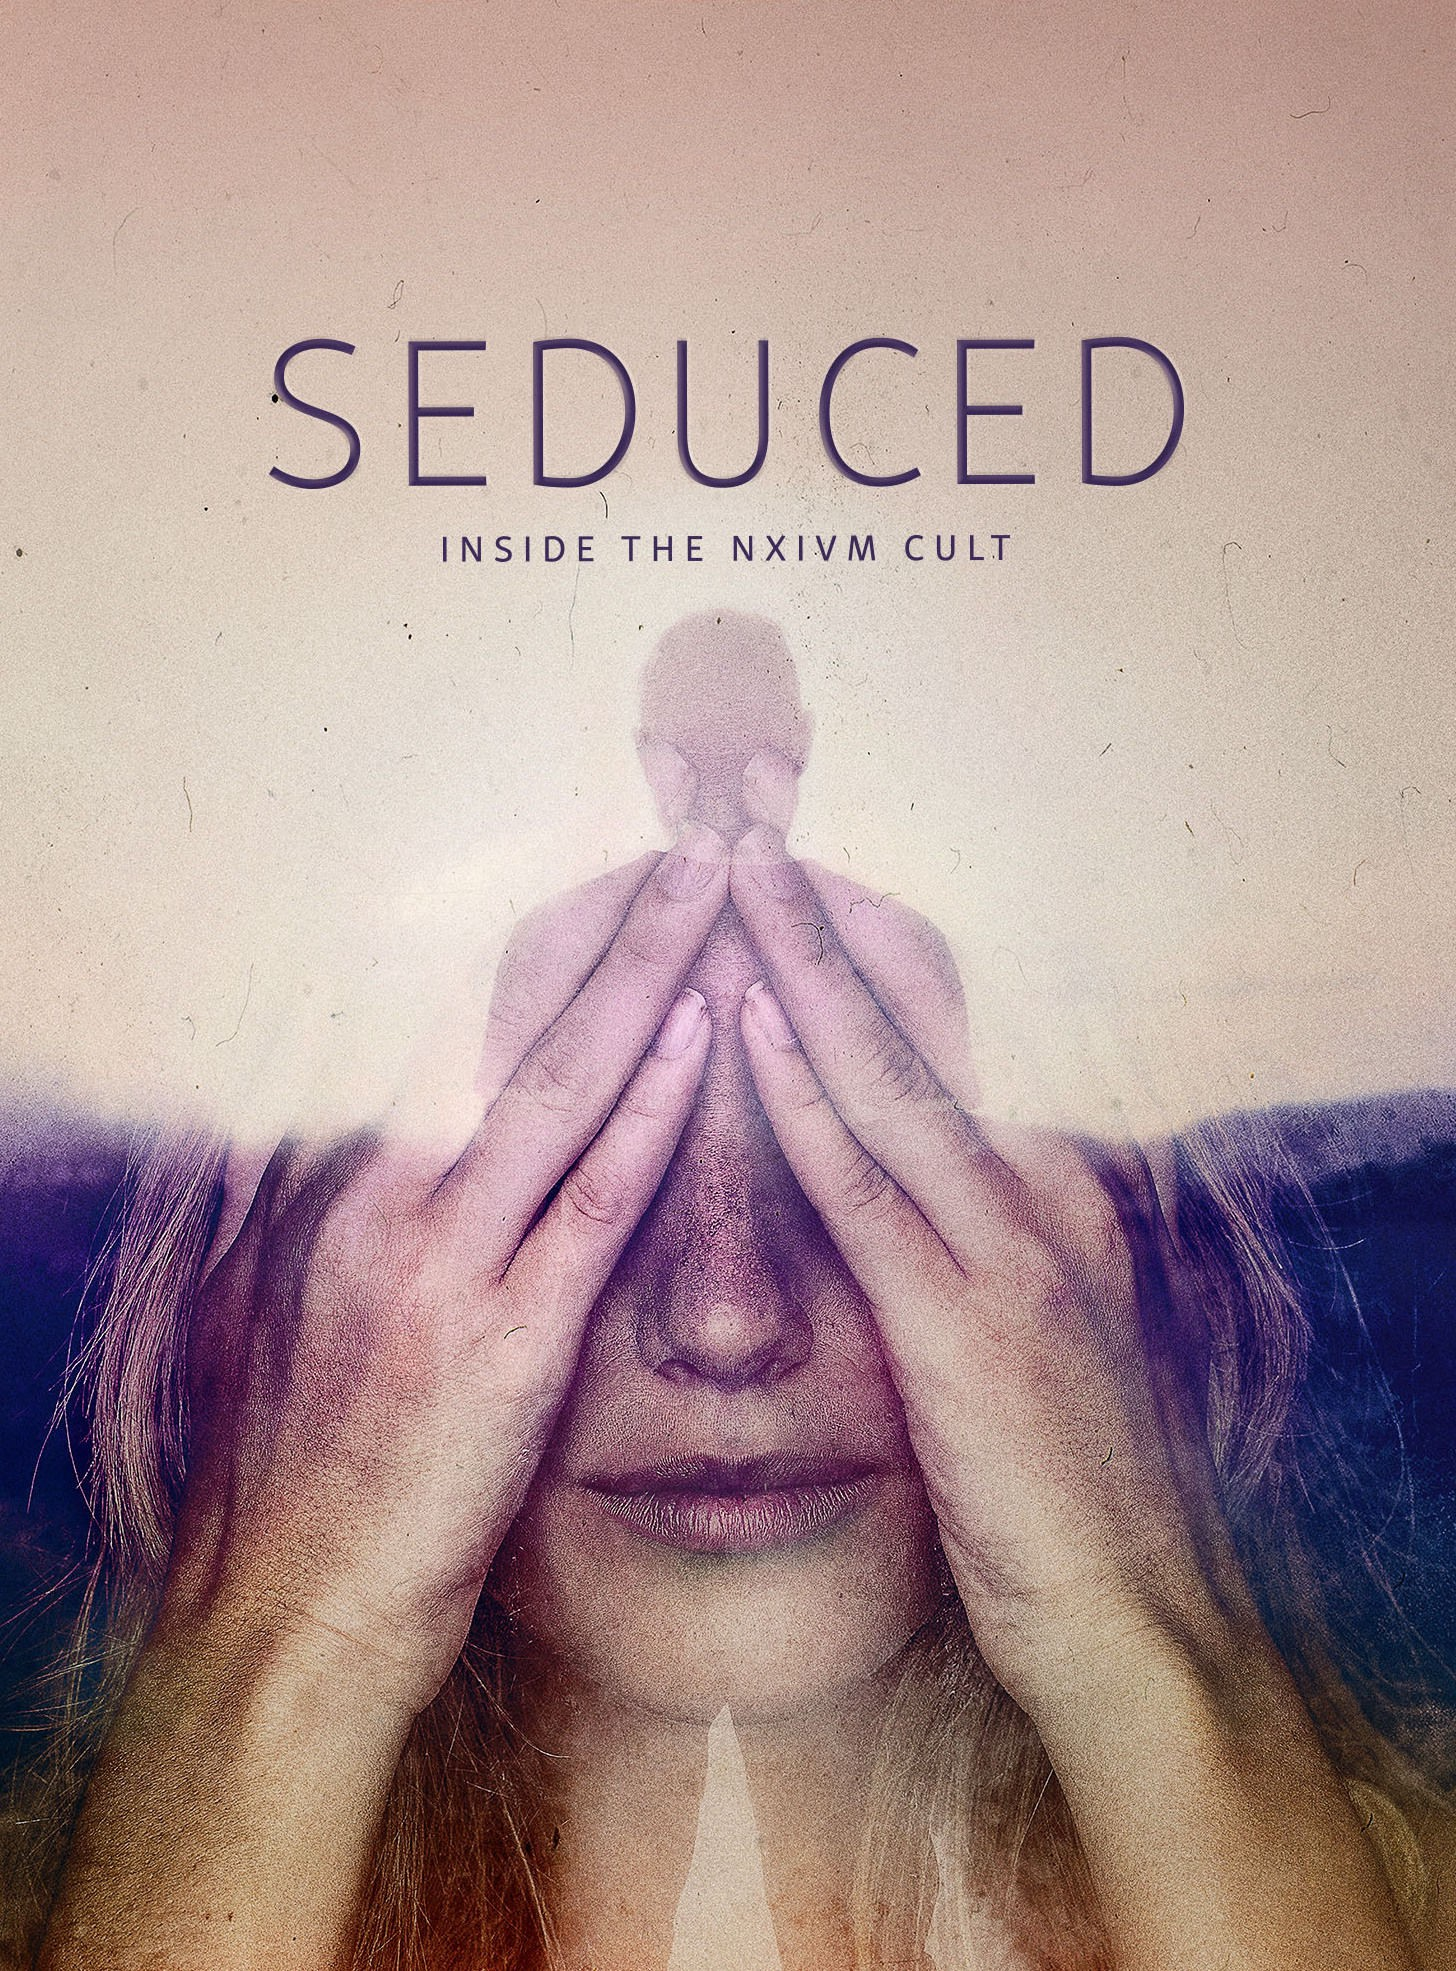 Seduced: Inside The NXIVM Cult Season 1 Episode 2 - Indoctrinated